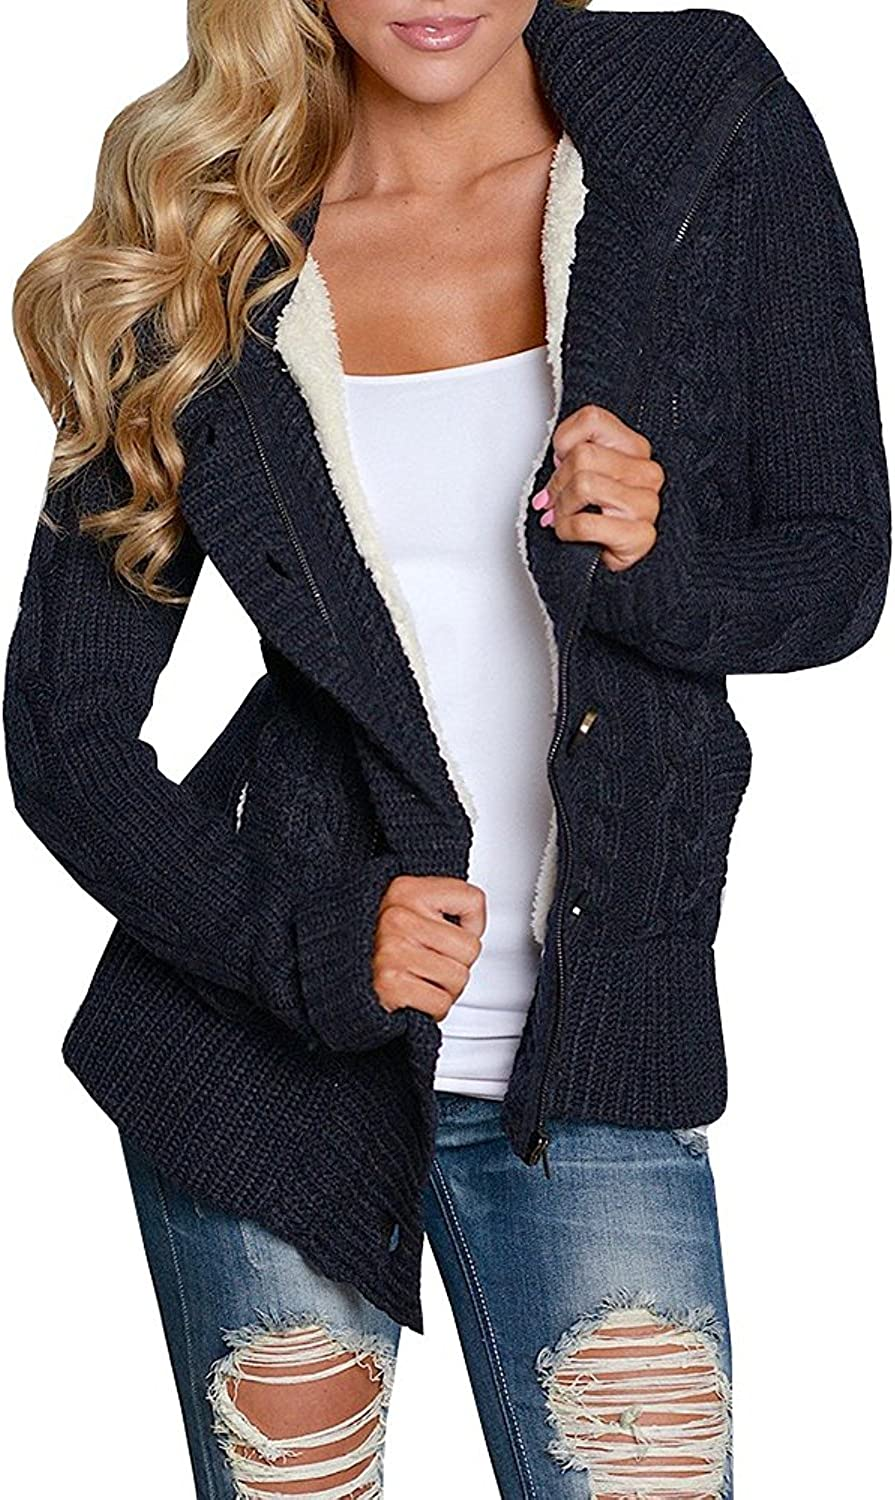 Enjoybuy Womens Cable Knit Cardigan Sweaters Hooded Sherpa Lined Open Front Buttons Closure Outerwear